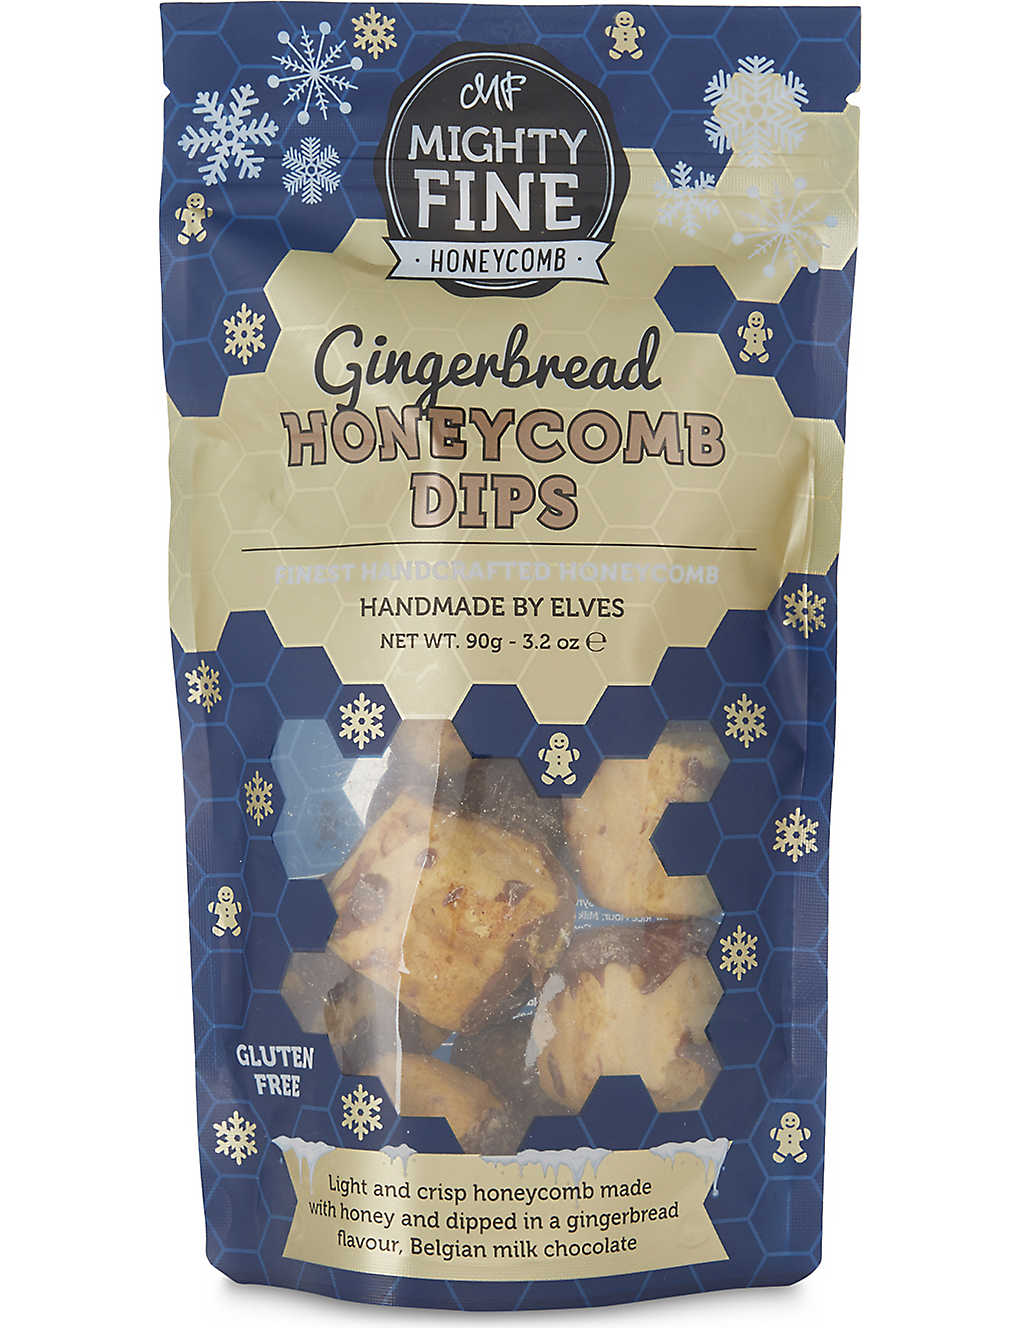 MIGHTYFINE HONEYCOMB - Gingerbread honeycomb dips 90g | Selfridges com